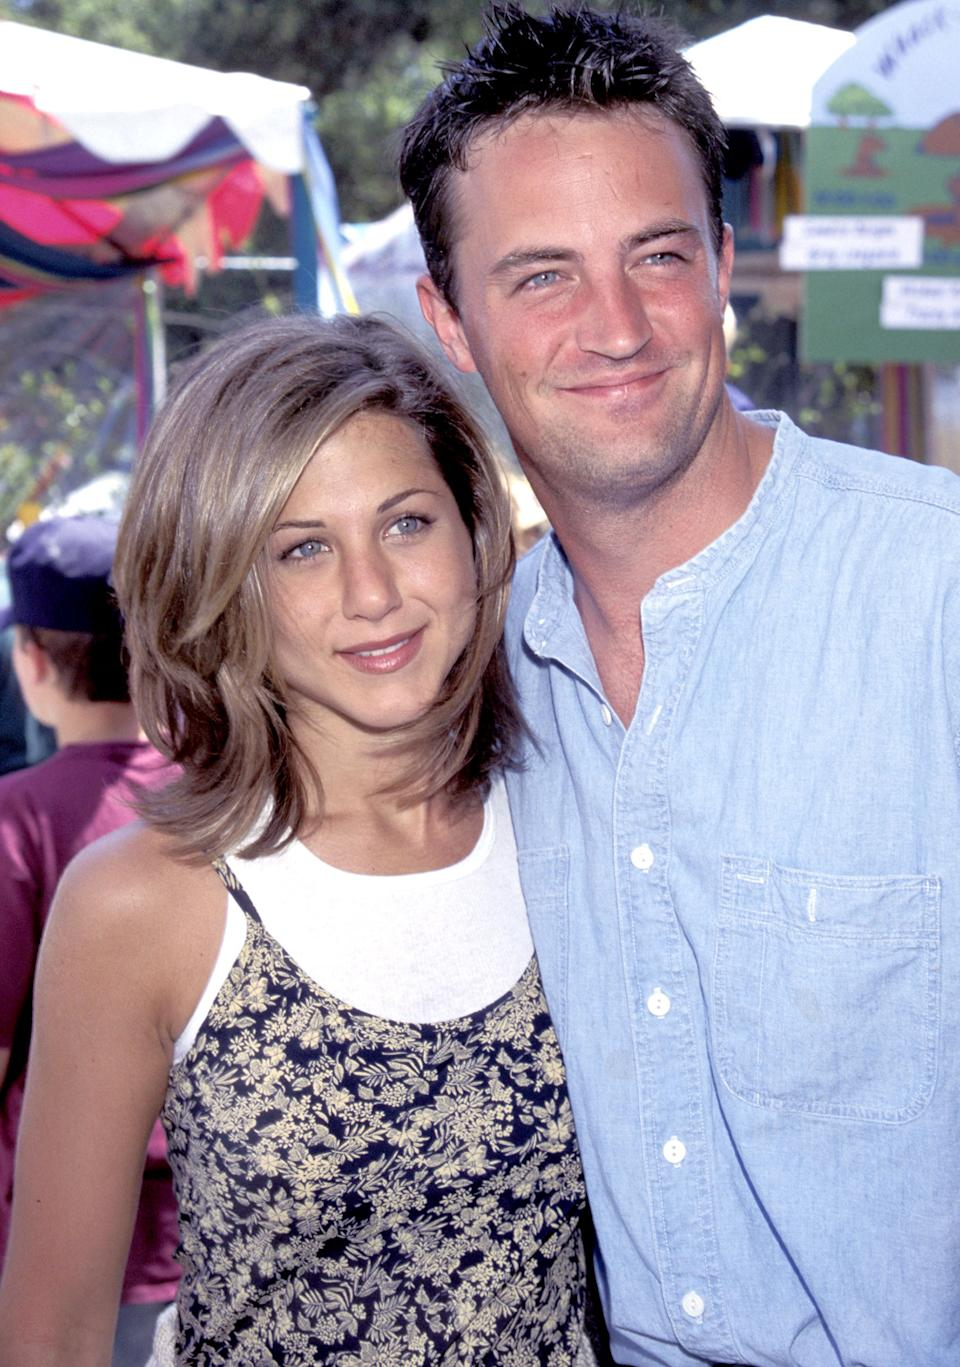 Jennifer Aniston and Matthew Perry at the Private Home in Los Angeles, California (Photo by Kevin Mazur/WireImage)